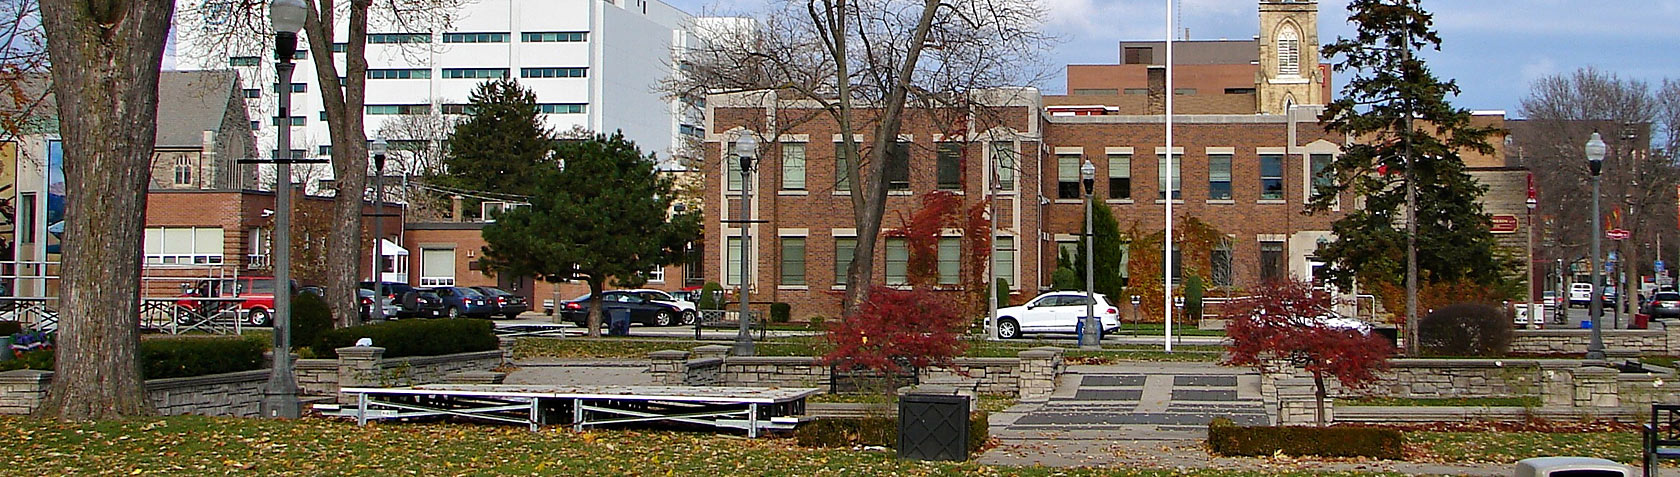 Downtown Oshawa